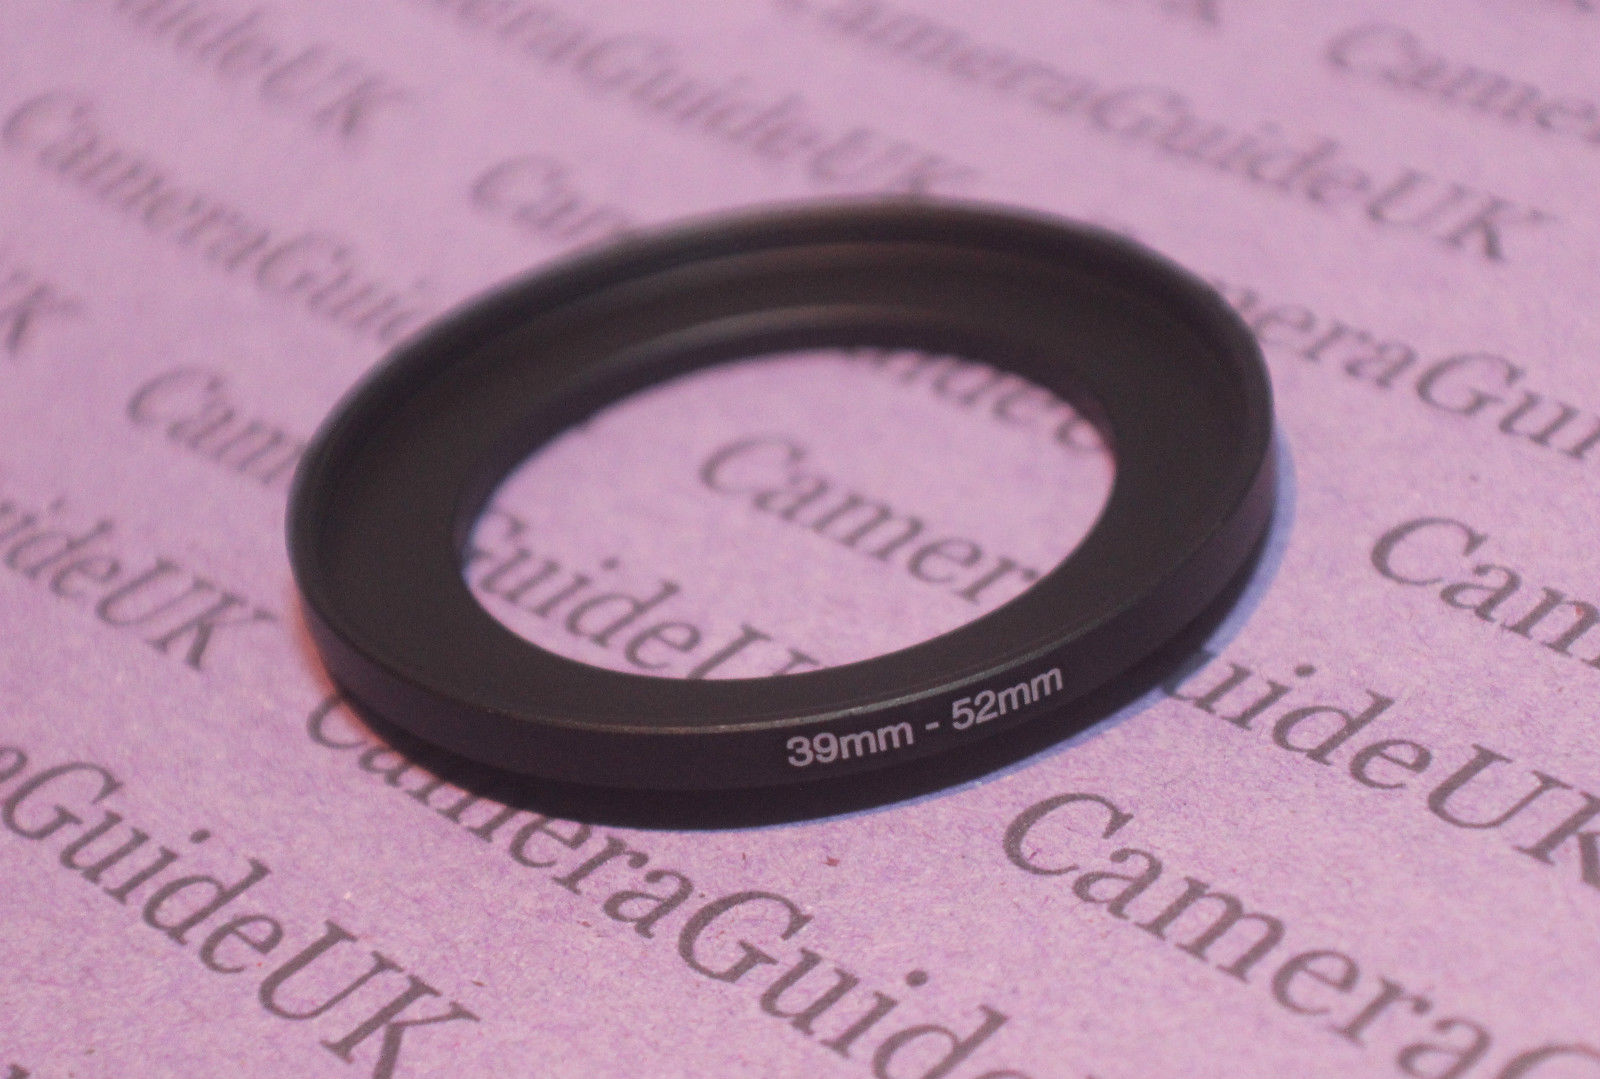 39mm-52mm 39-52 mm 39 to 52 Step Up lens Filter Ring Adapter